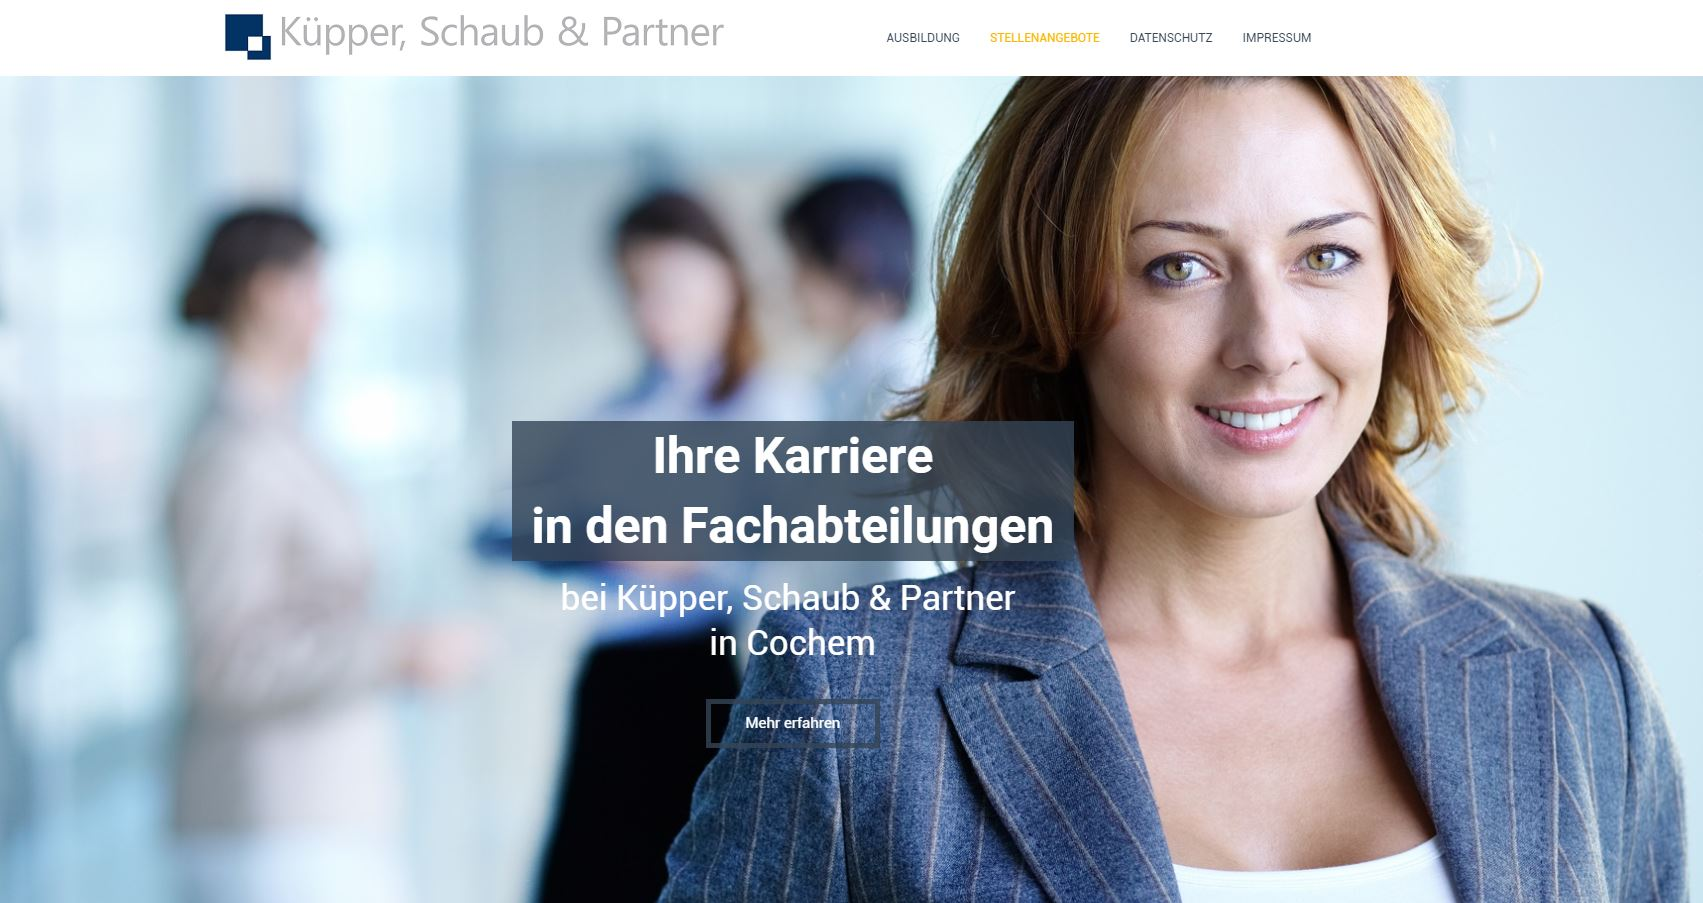 referenz-Steuerkanzlei-karriere_kuepperSchaubPartner_plentyLeads-GmbH_Landingpage-Screenshot_2017-08